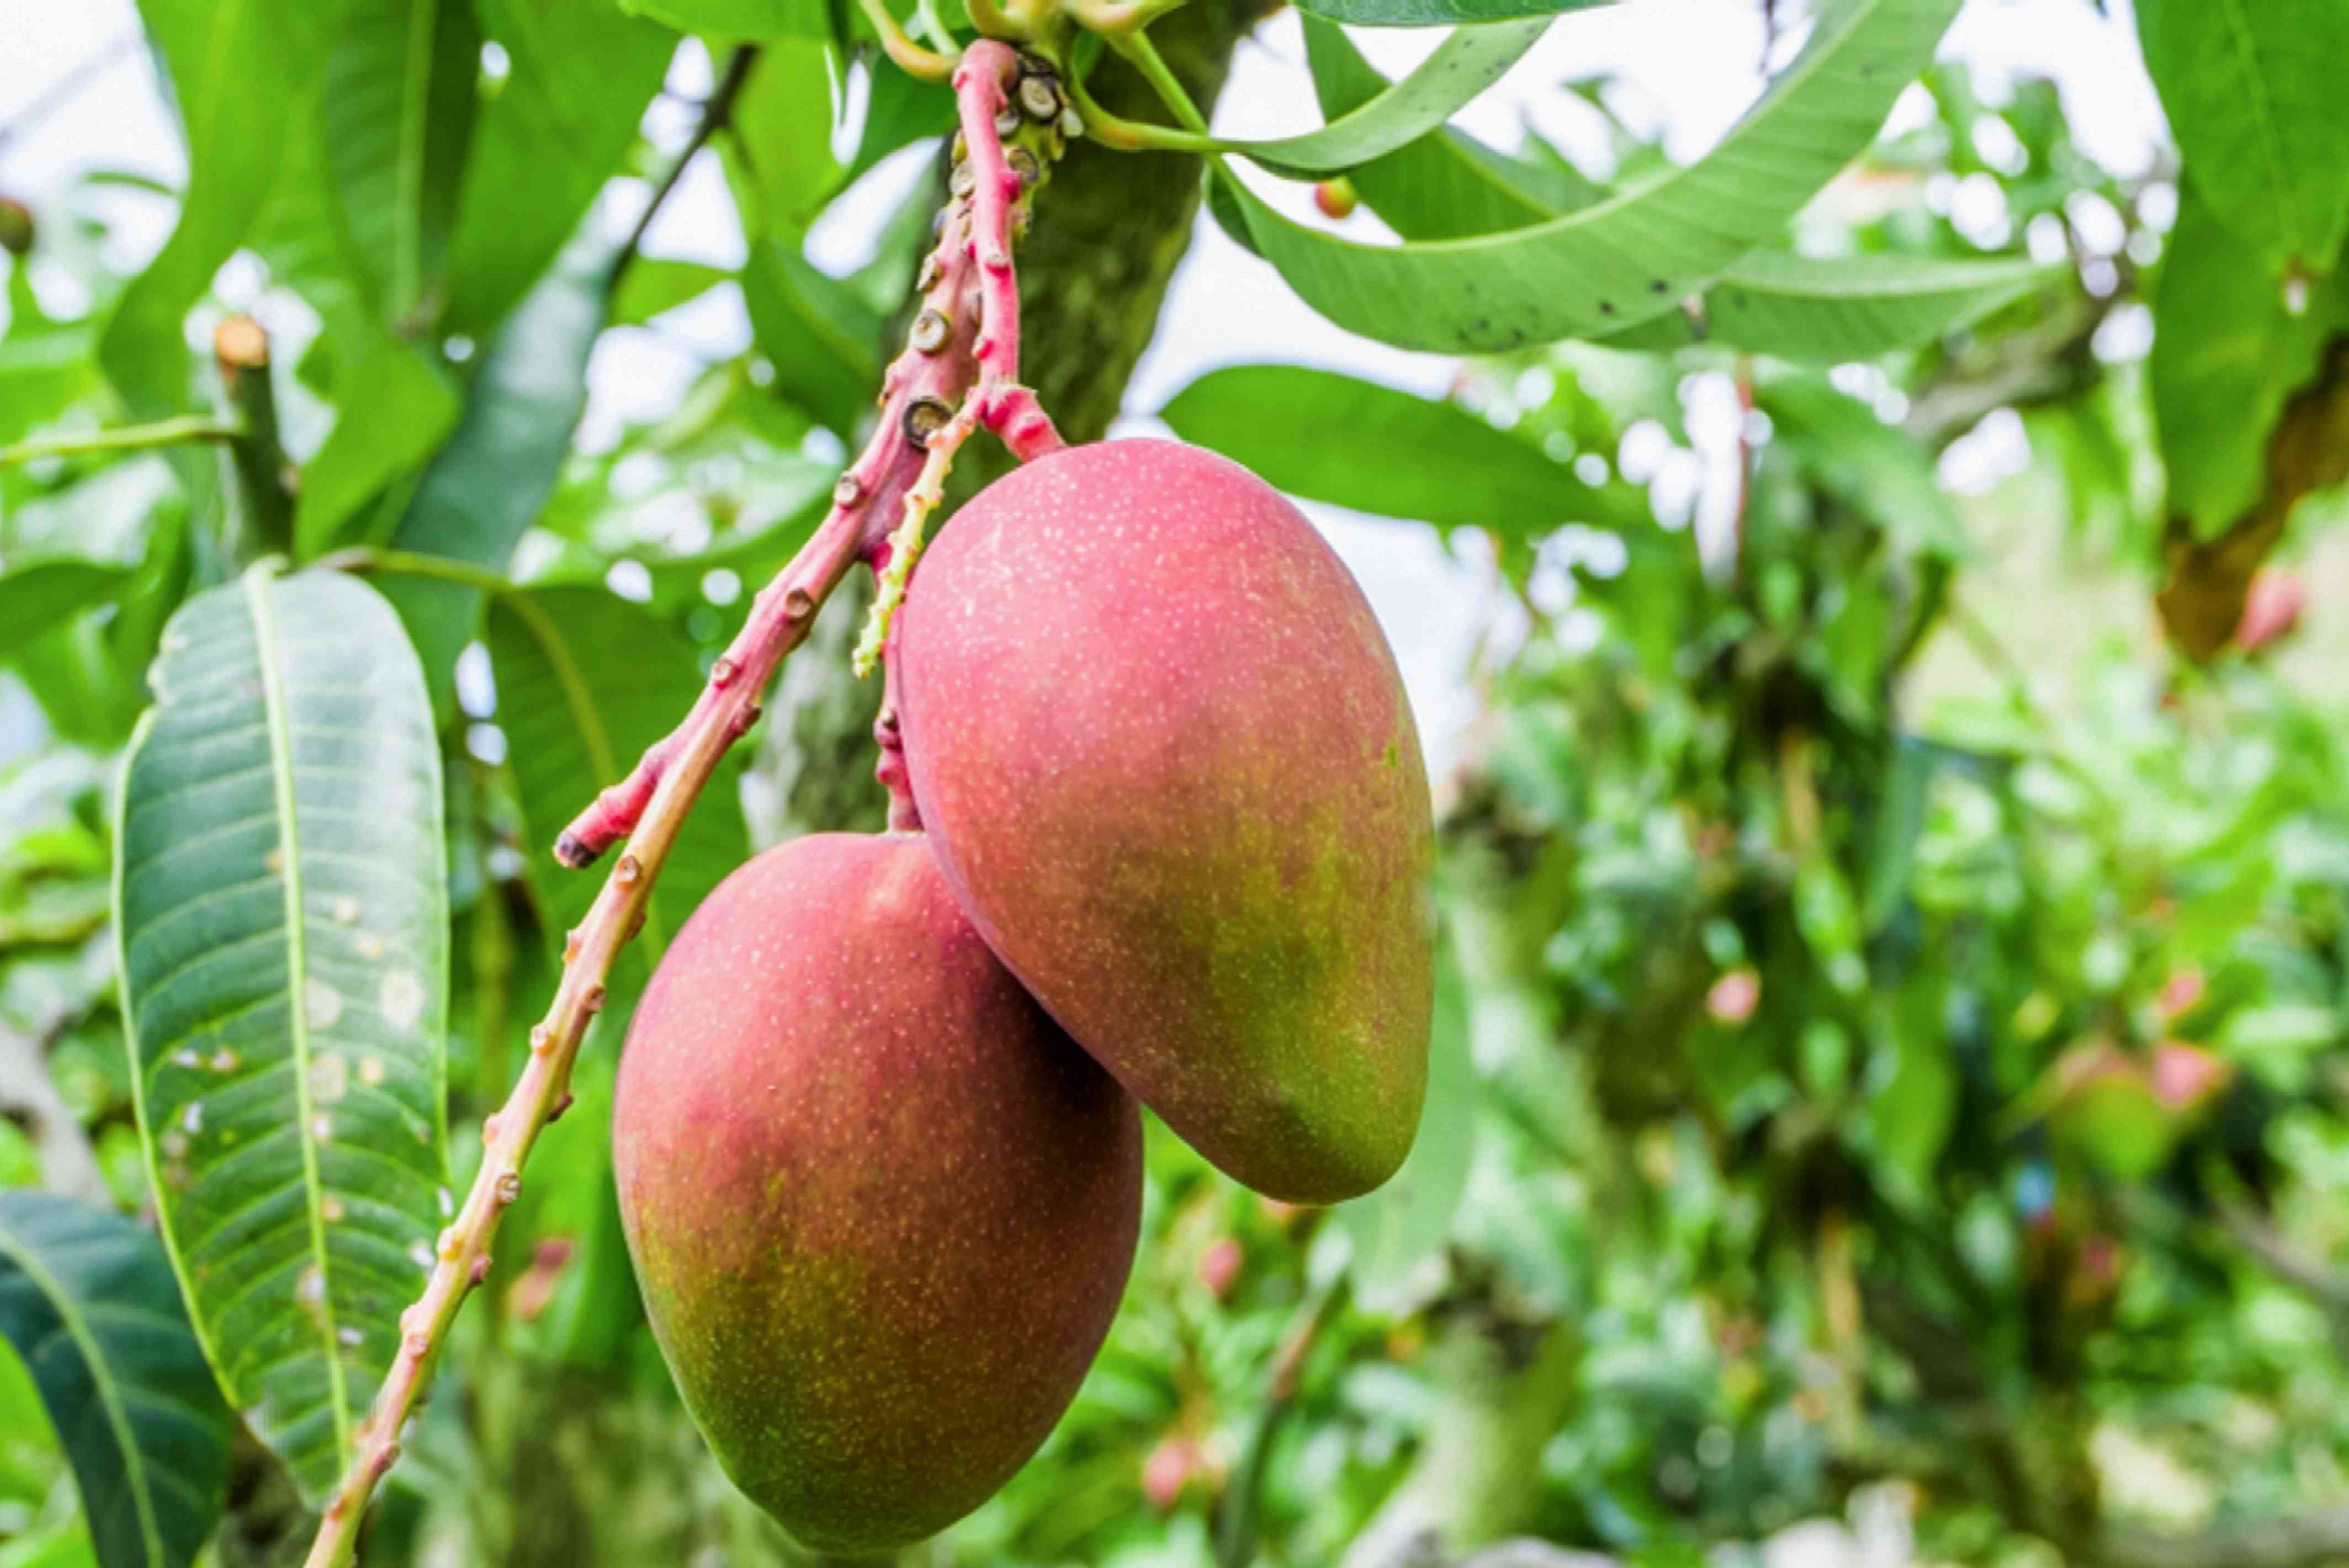 Red mangoes hanging from mango tree branch closeup